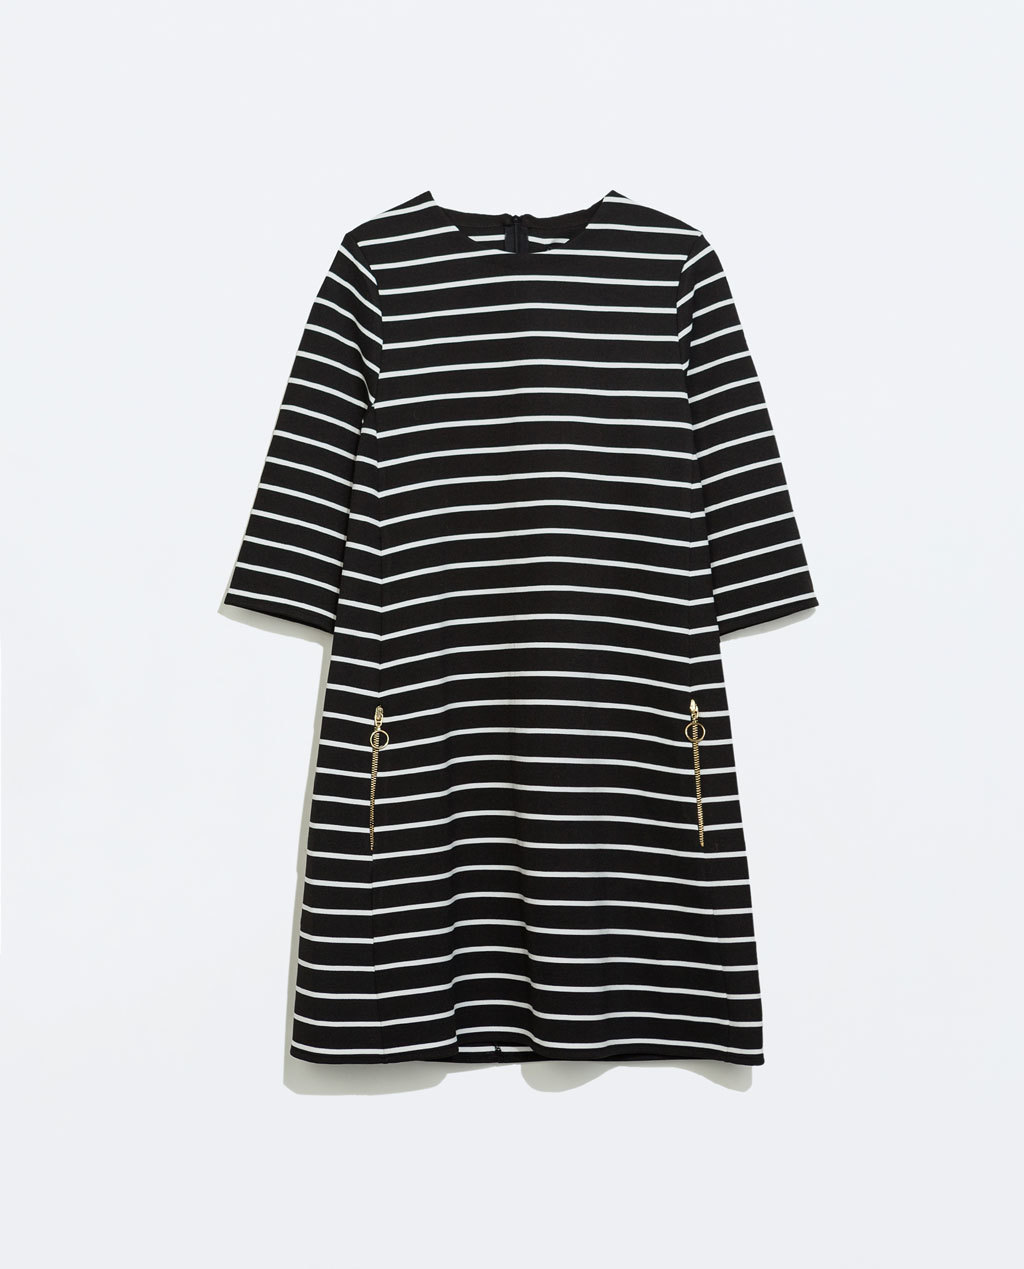 Striped Dress - style: tunic; length: mid thigh; pattern: horizontal stripes; secondary colour: white; predominant colour: black; occasions: casual, creative work; fit: straight cut; fibres: polyester/polyamide - stretch; neckline: crew; hip detail: subtle/flattering hip detail; sleeve length: 3/4 length; sleeve style: standard; pattern type: fabric; pattern size: standard; texture group: jersey - stretchy/drapey; season: a/w 2014